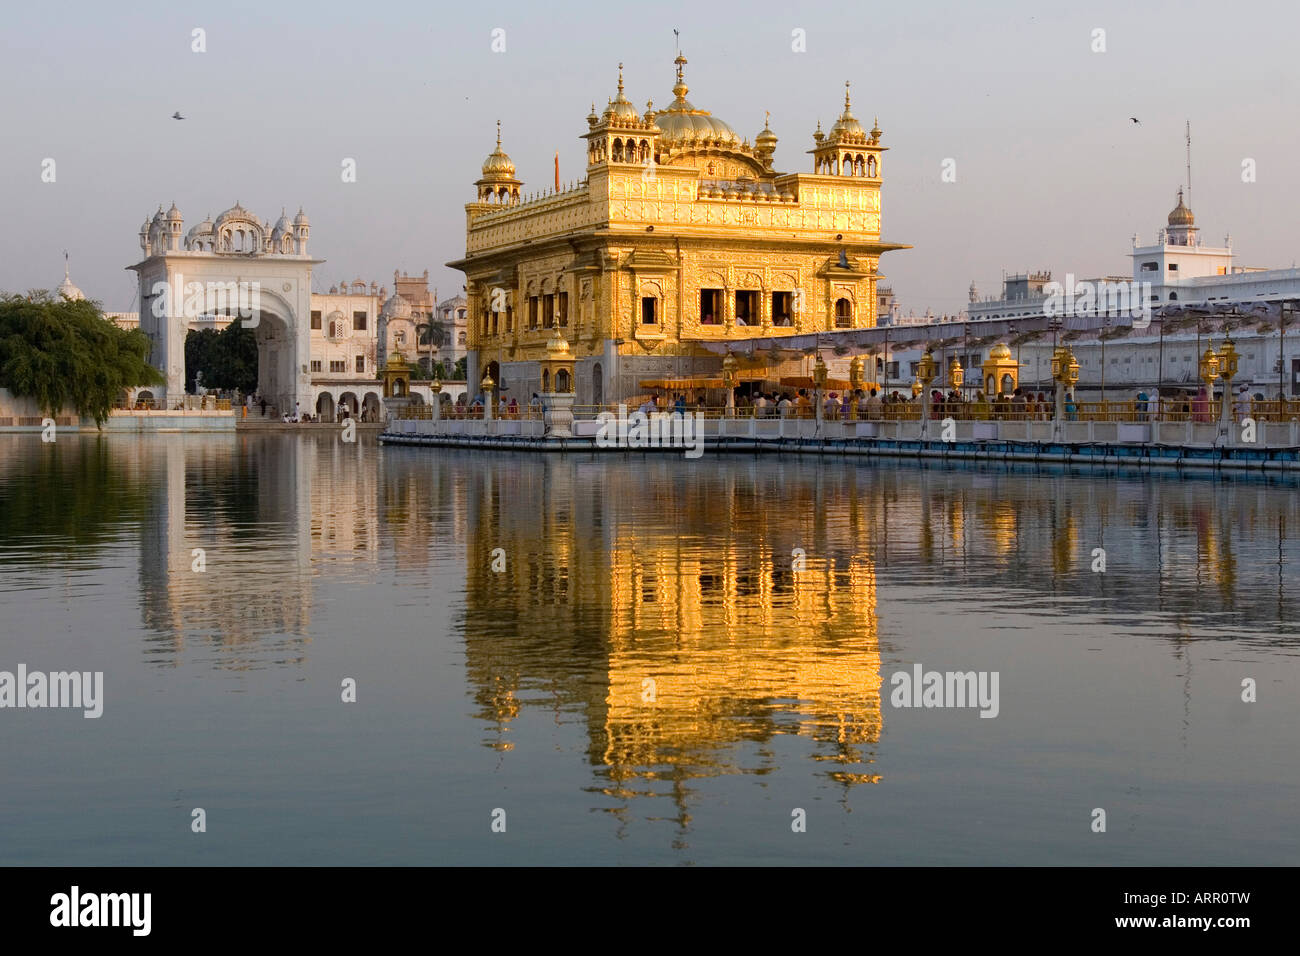 amritsar golden temple india landscape stock photos & amritsar